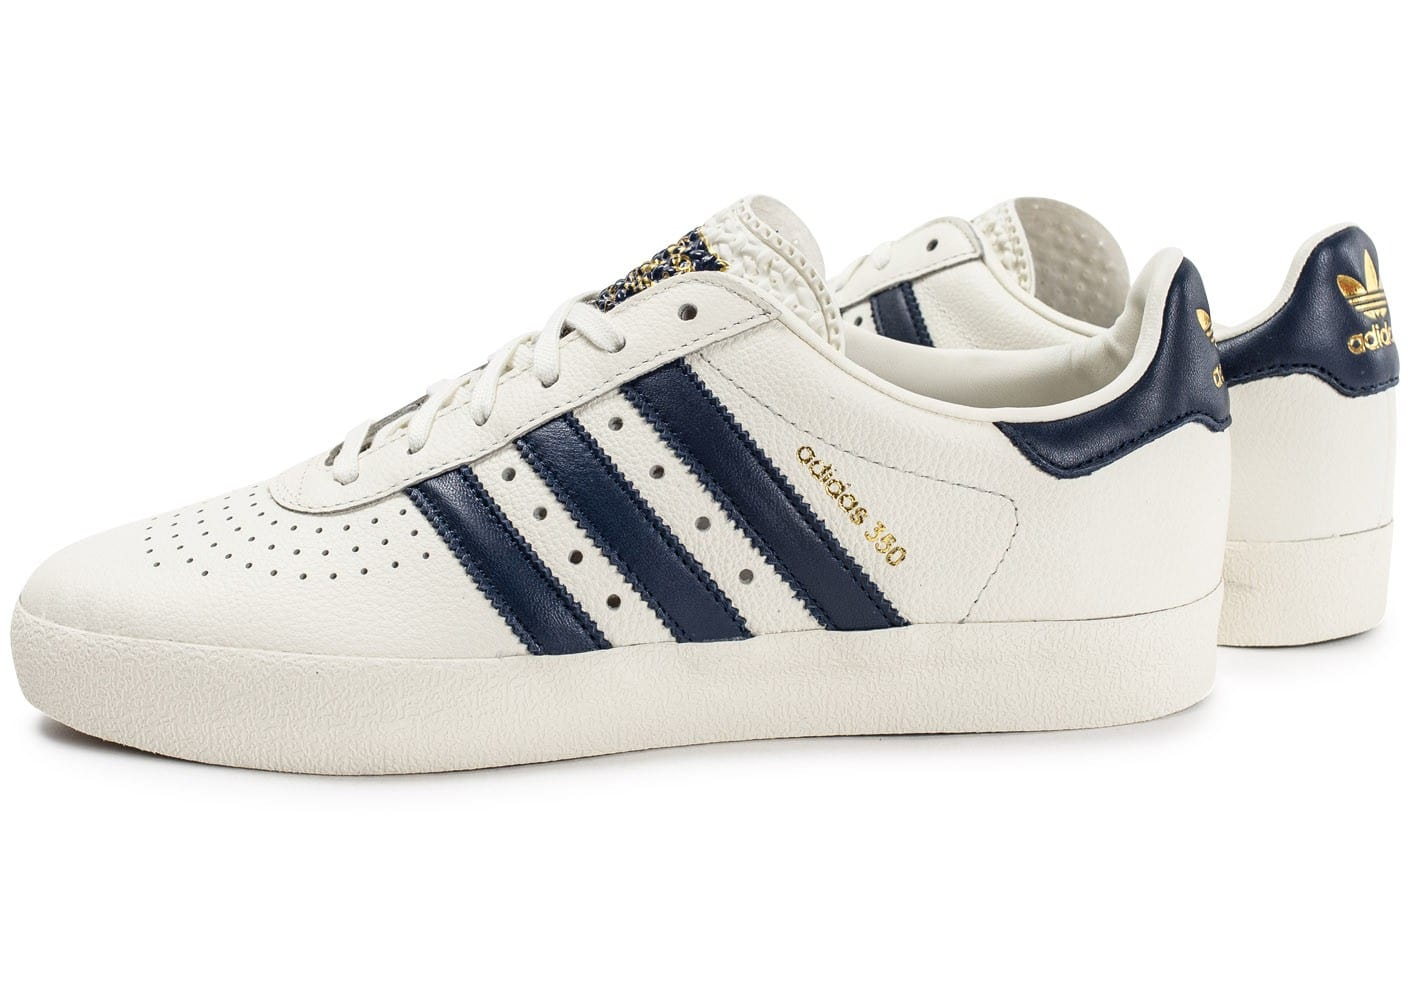 Adidas Chaussures Dentelle